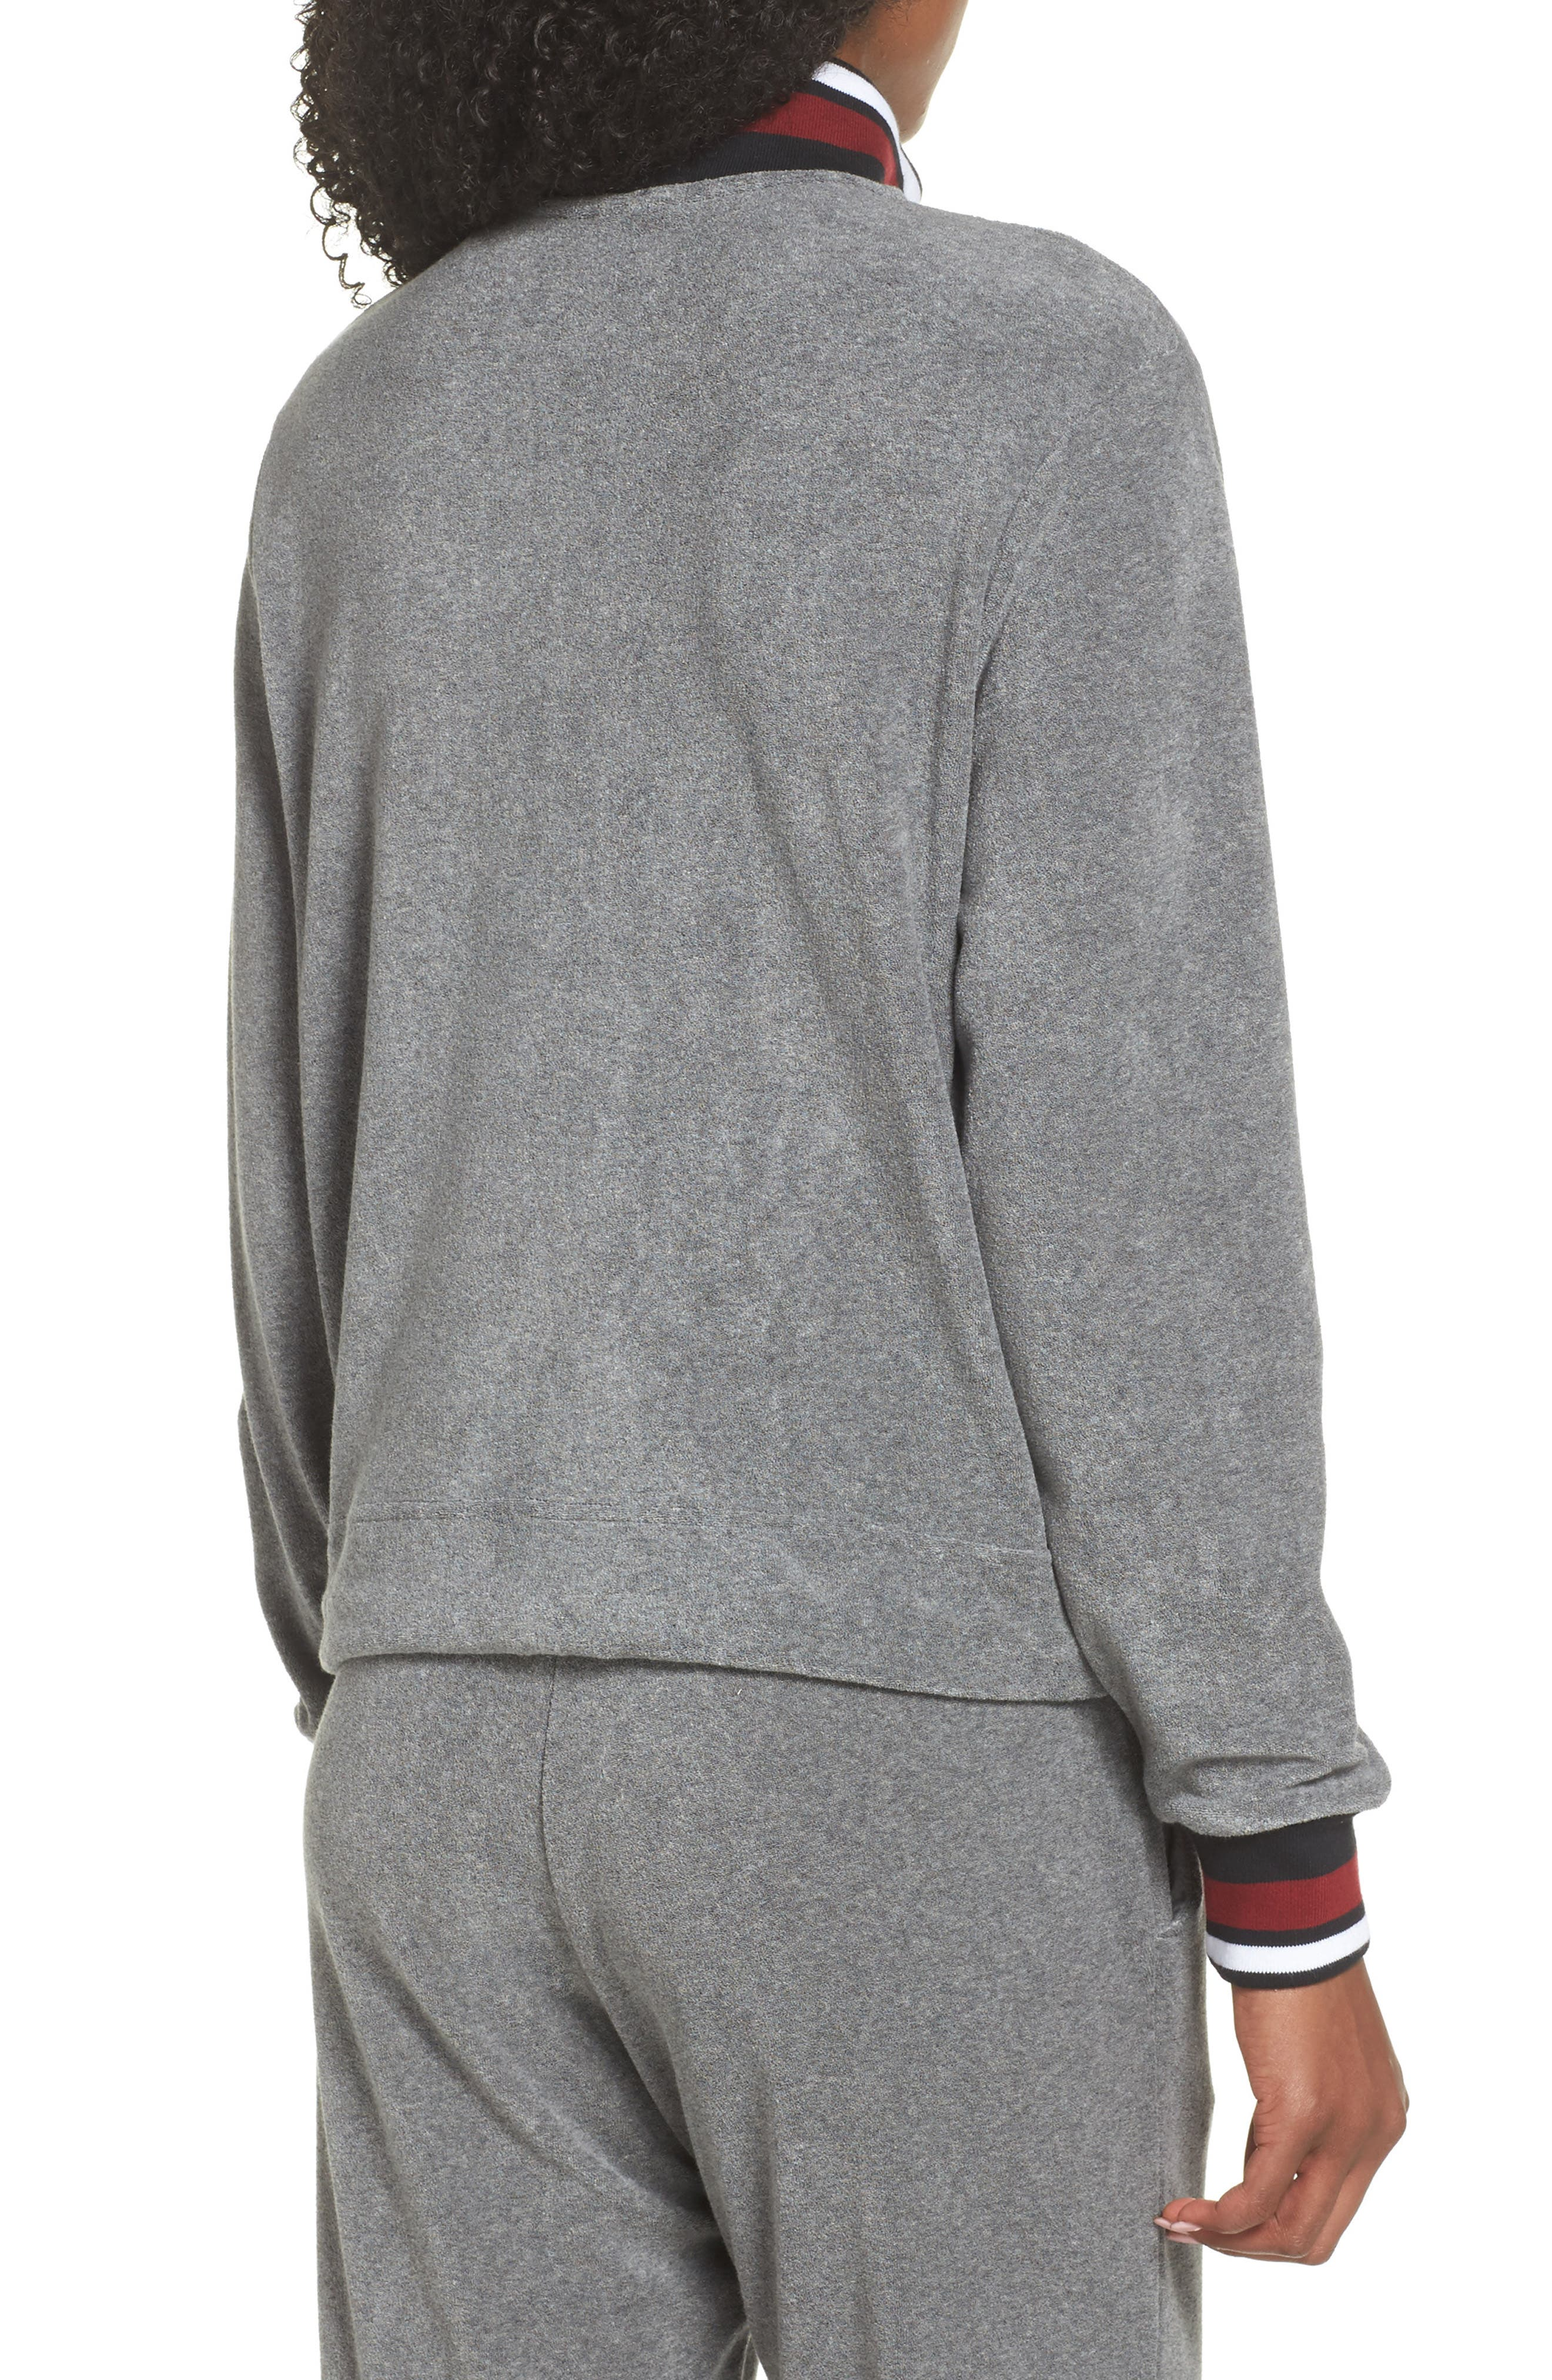 Sportswear French Terry Jacket,                             Alternate thumbnail 2, color,                             Heather/ Anthracite/ Team Red